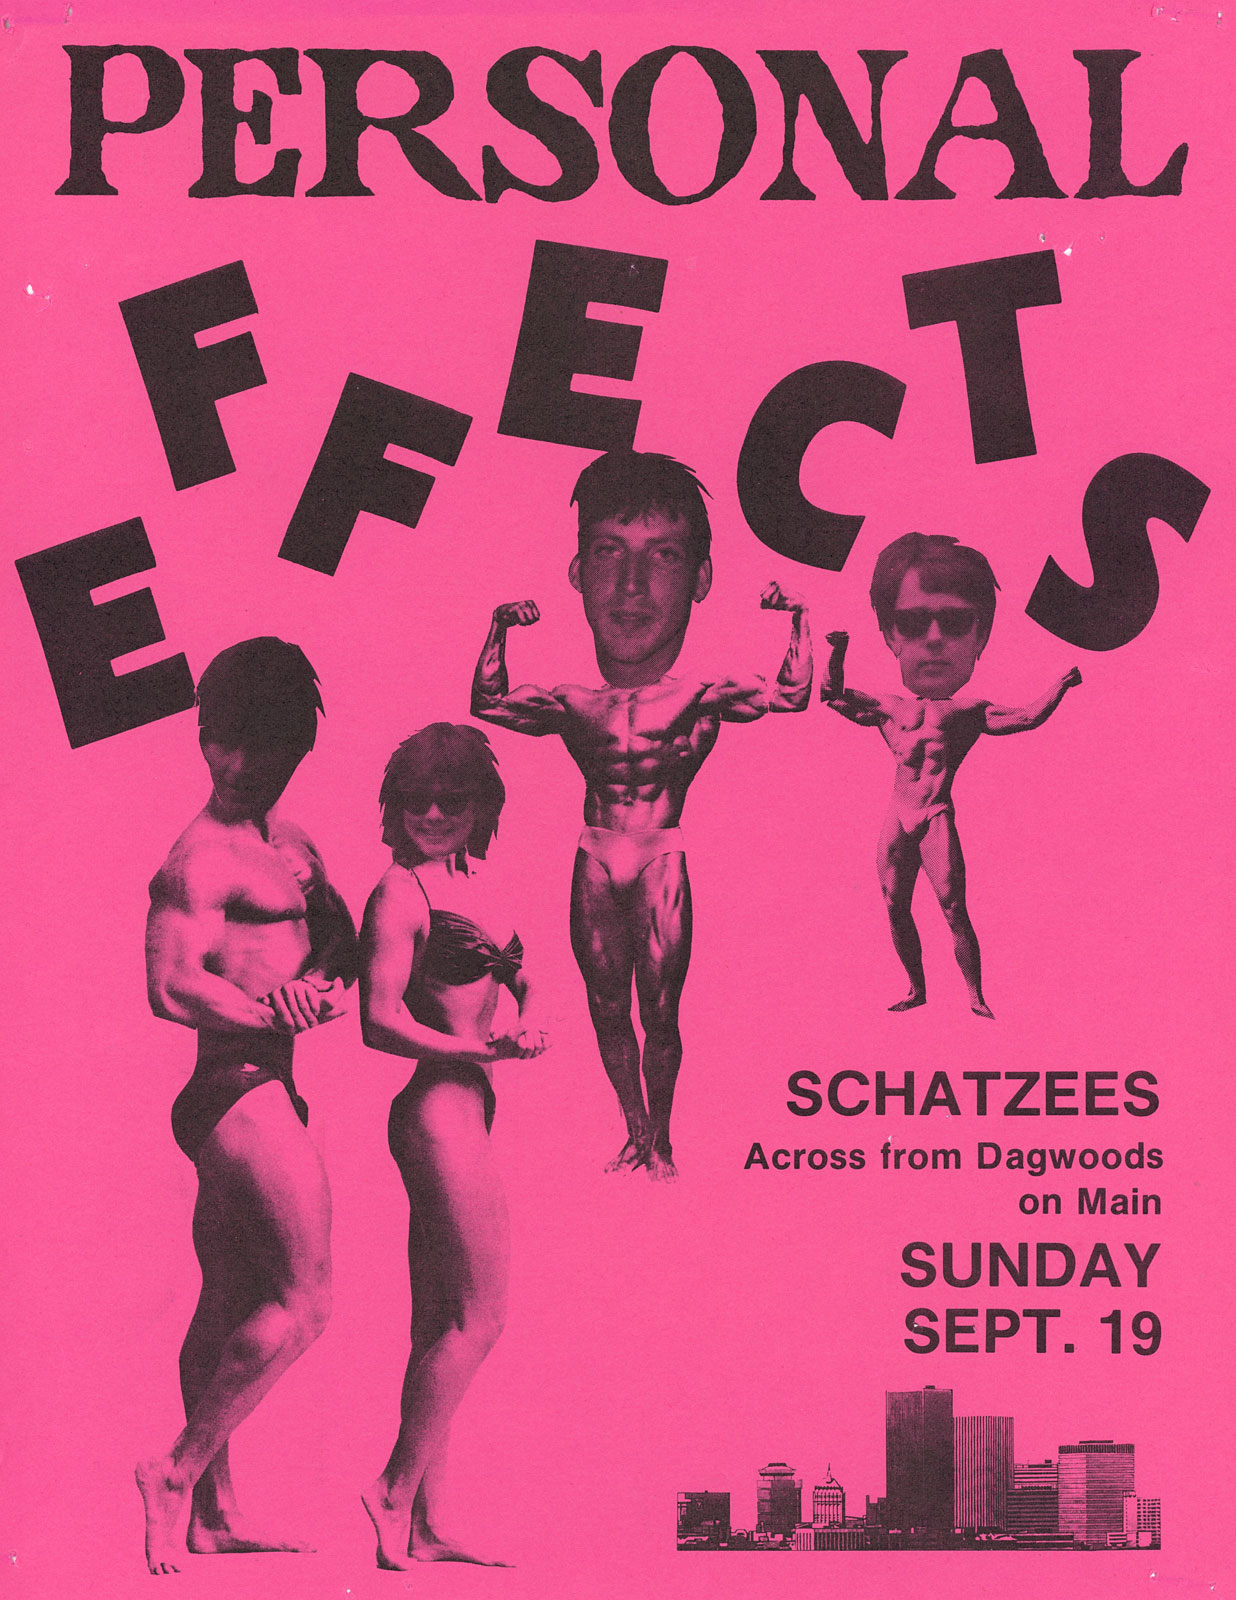 Poster for Personal Effects at Schatzee's in Rochester, New York 09.19.1982